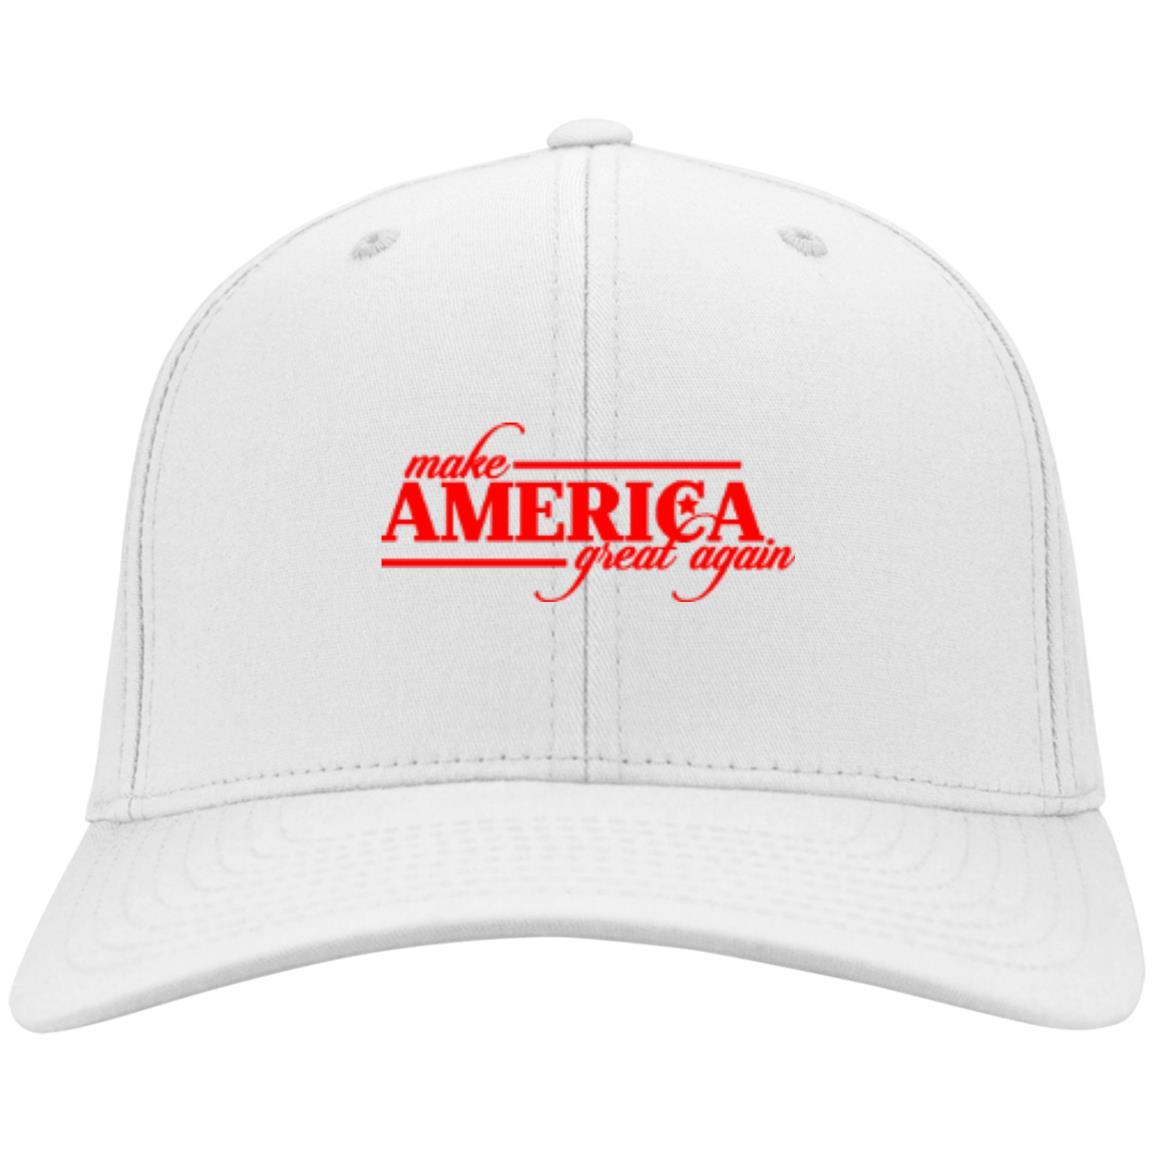 Make America Great Again - Port & Co. Twill Cap White